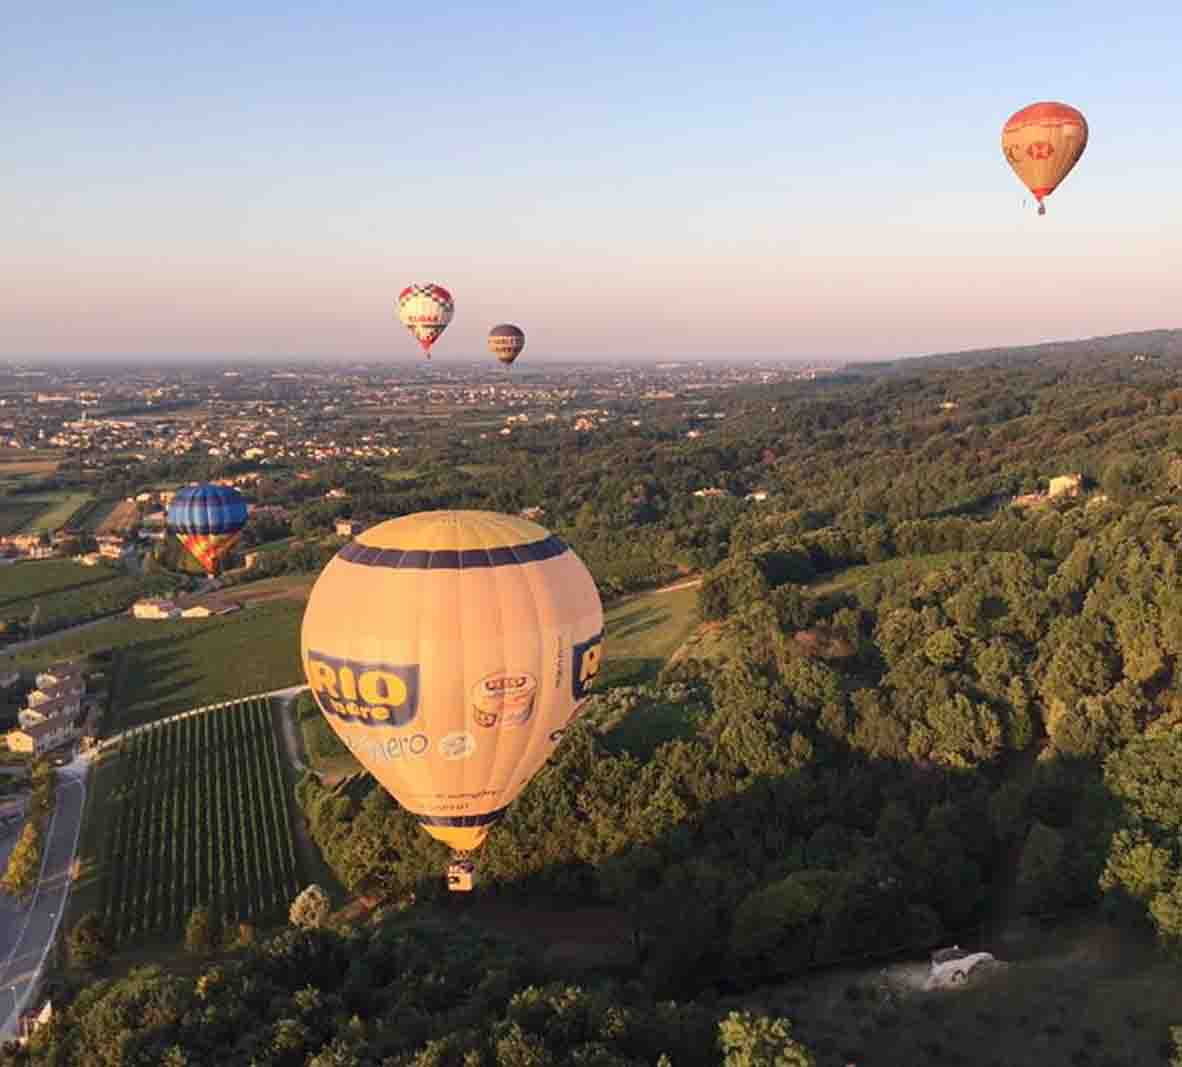 Mongolfiere in volo in toscana